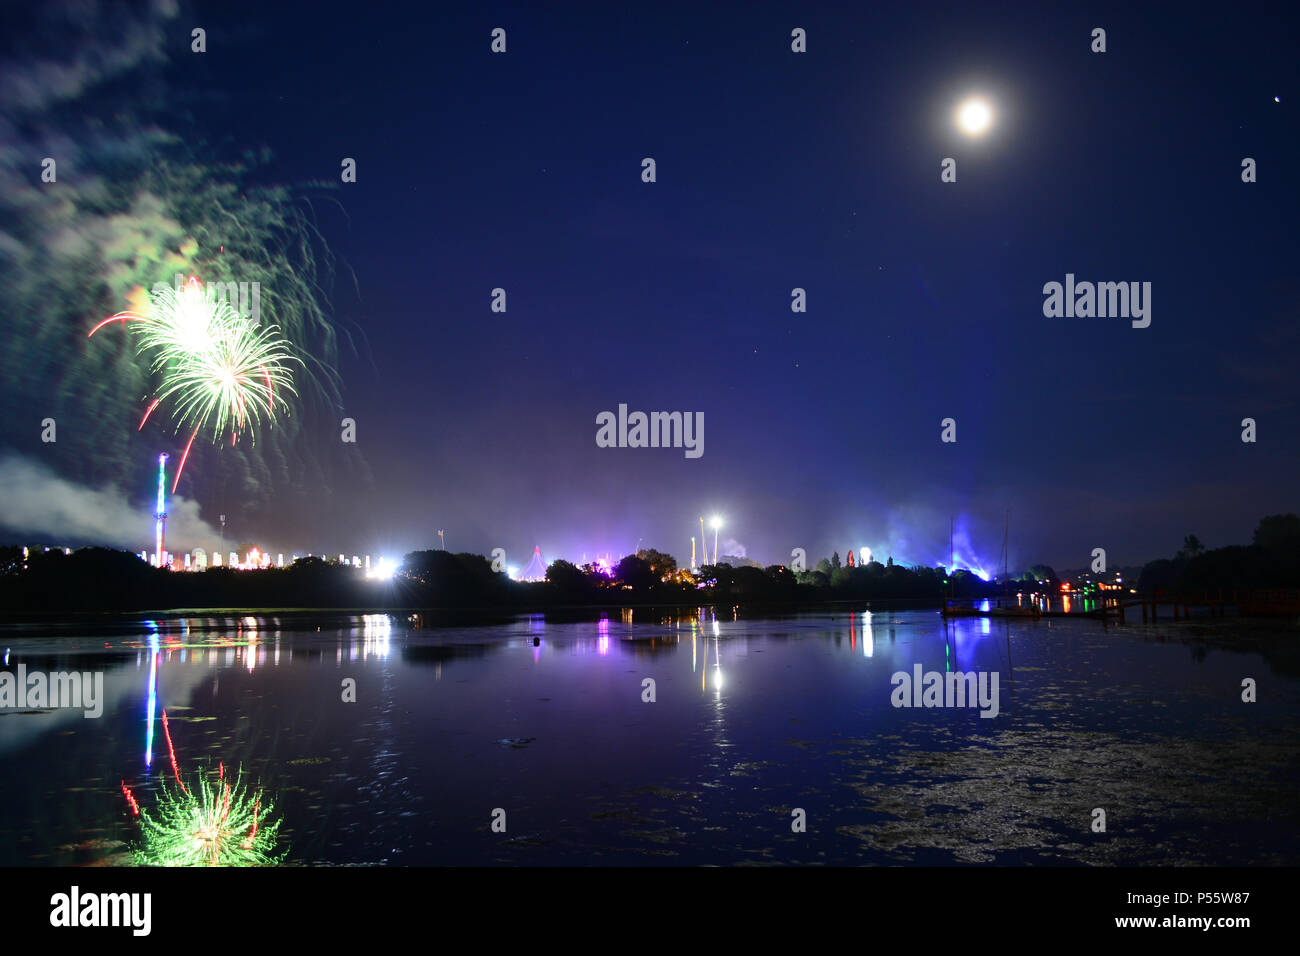 Newport, Isle of Wight, UK. Fireworks and a near full moon herald the end of the last day of the Isle of Wight Festival 2018. - Stock Image